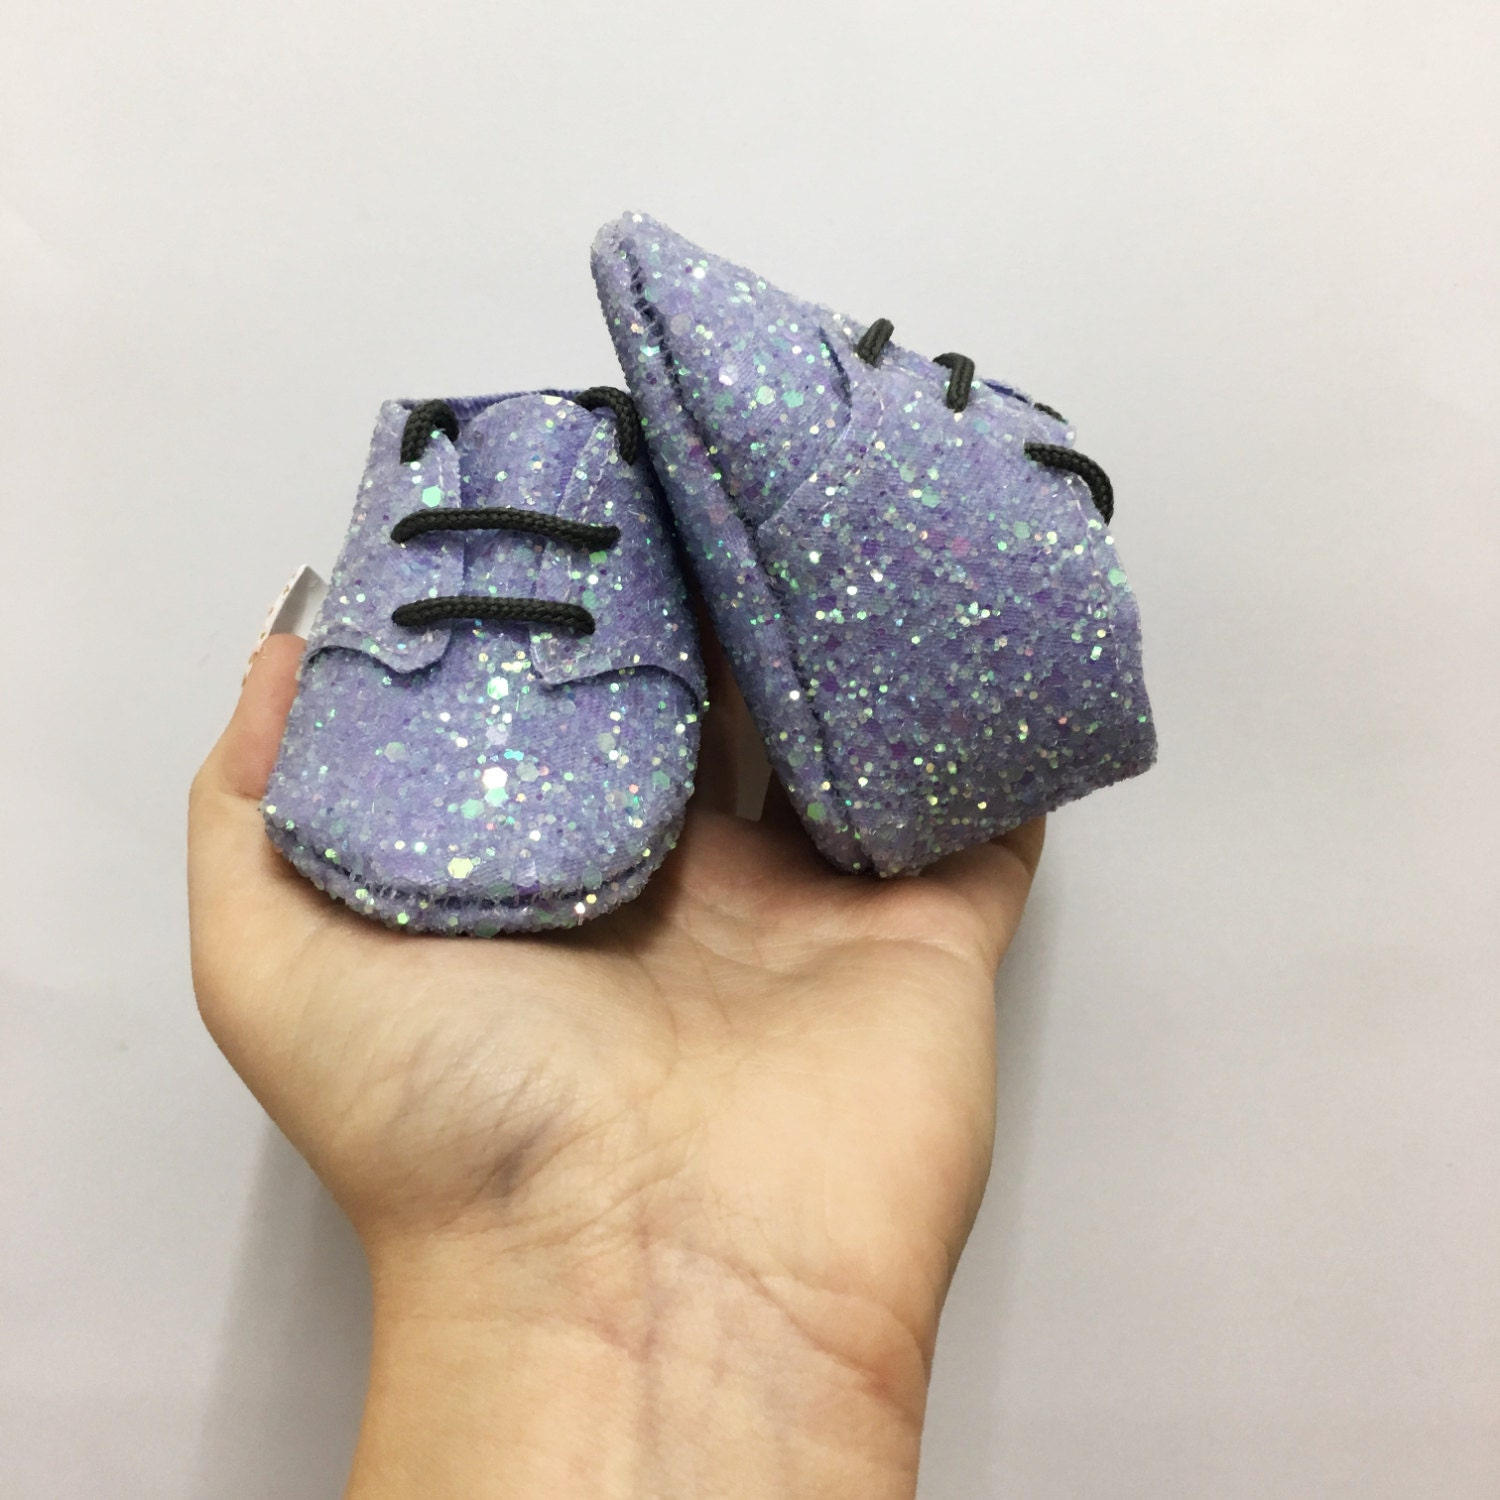 Baby booties  unique shimmery lilac glittery fabric  unisex  pre walker  first shoes  handmade  cot shoes  original